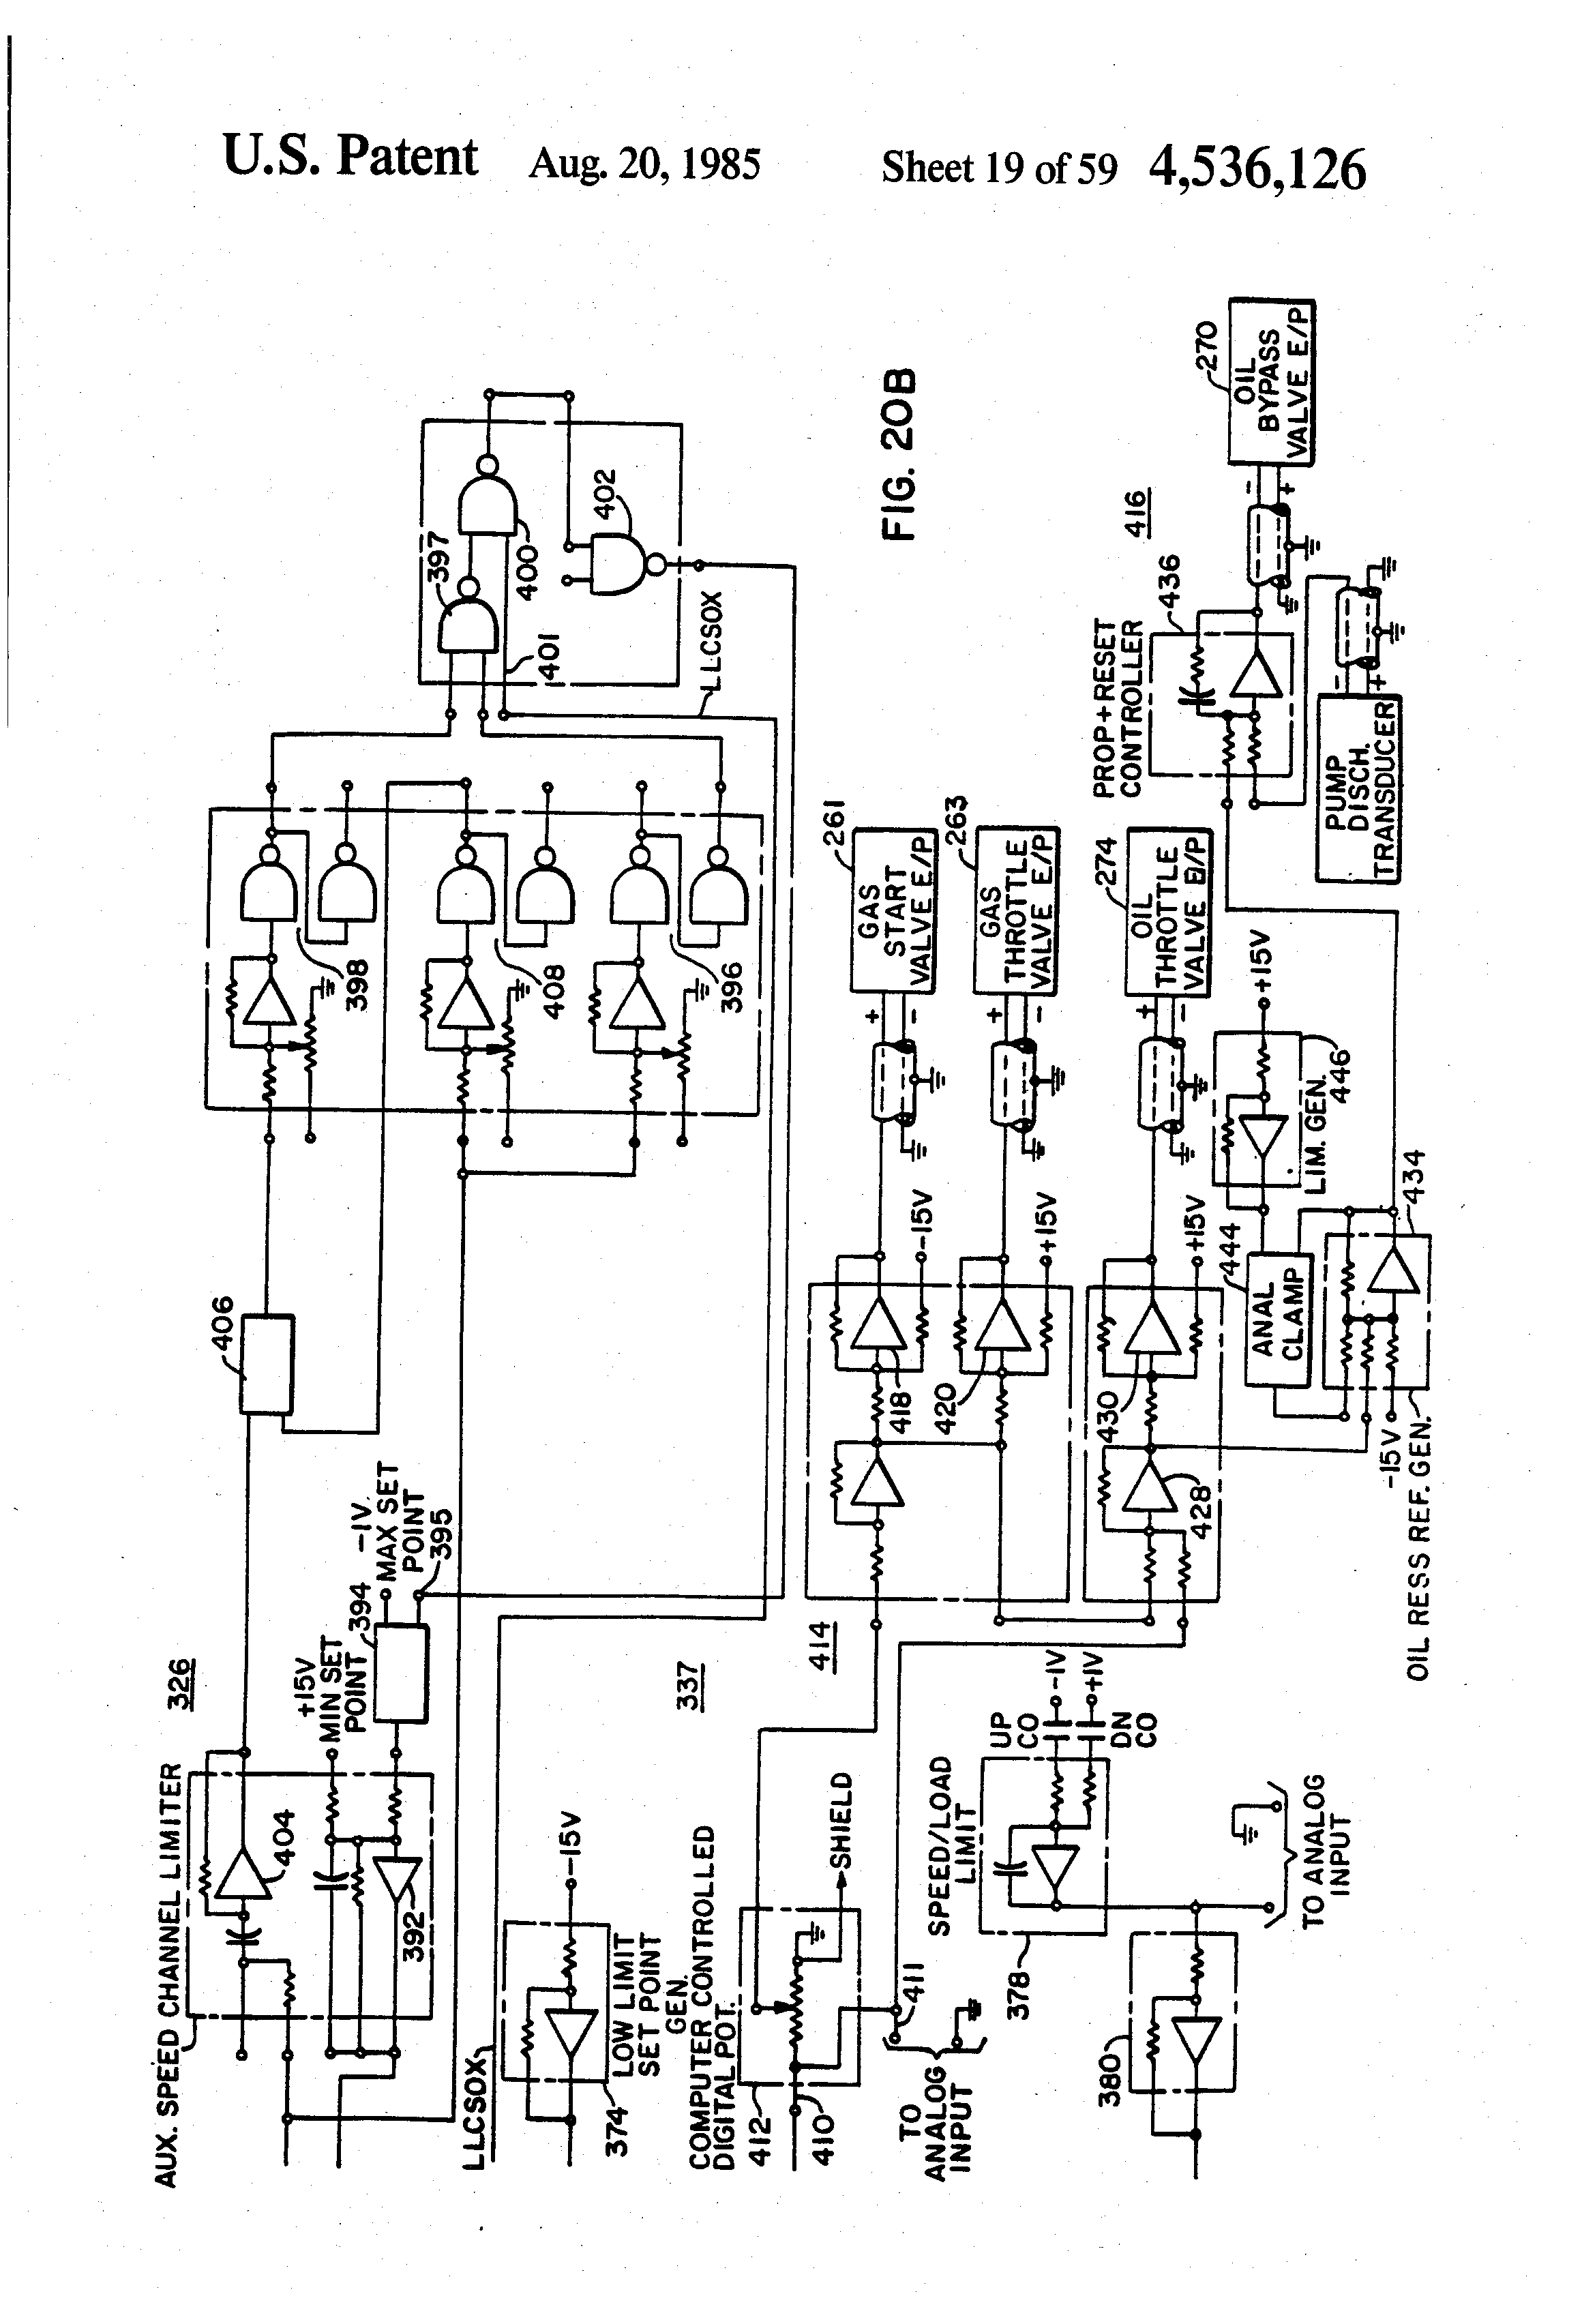 US4536126 19 patent us4536126 system and method employing a digital computer reliance duty master ac motor wiring diagram at webbmarketing.co